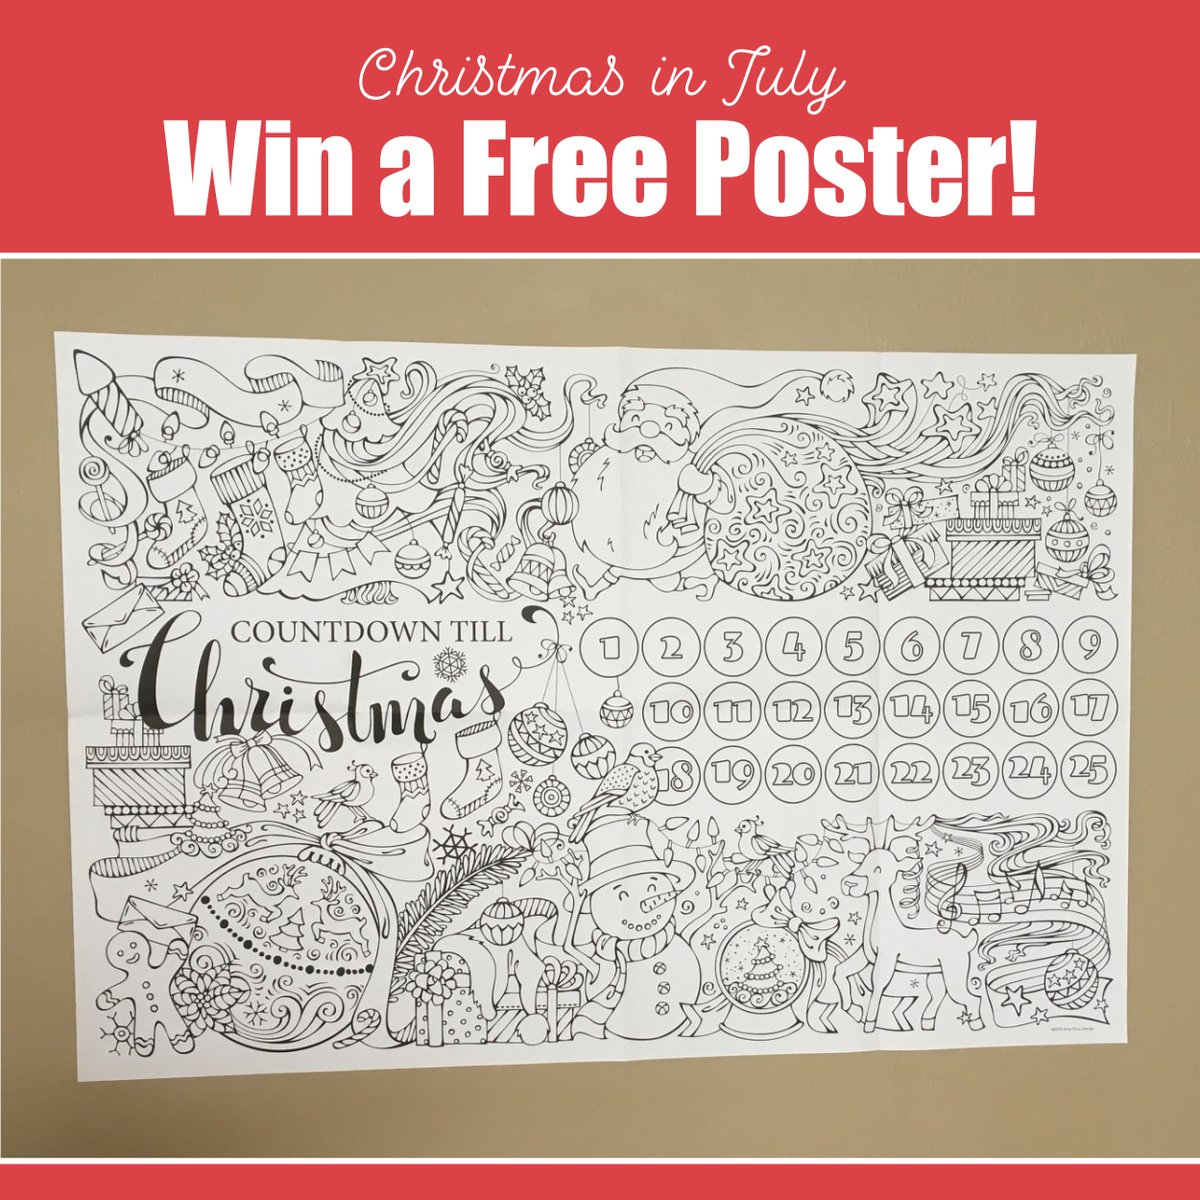 🎅Win a 36x24 Countdown Till Christmas colorable poster! To enter, retweet, or like this tweet (U.S. residents only). Ill make it a holly jolly Christmas (in July) for twenty; winners announced July 31. #win #giveaway #adventcalendar #christmasinjuly #adultcoloring #coloring